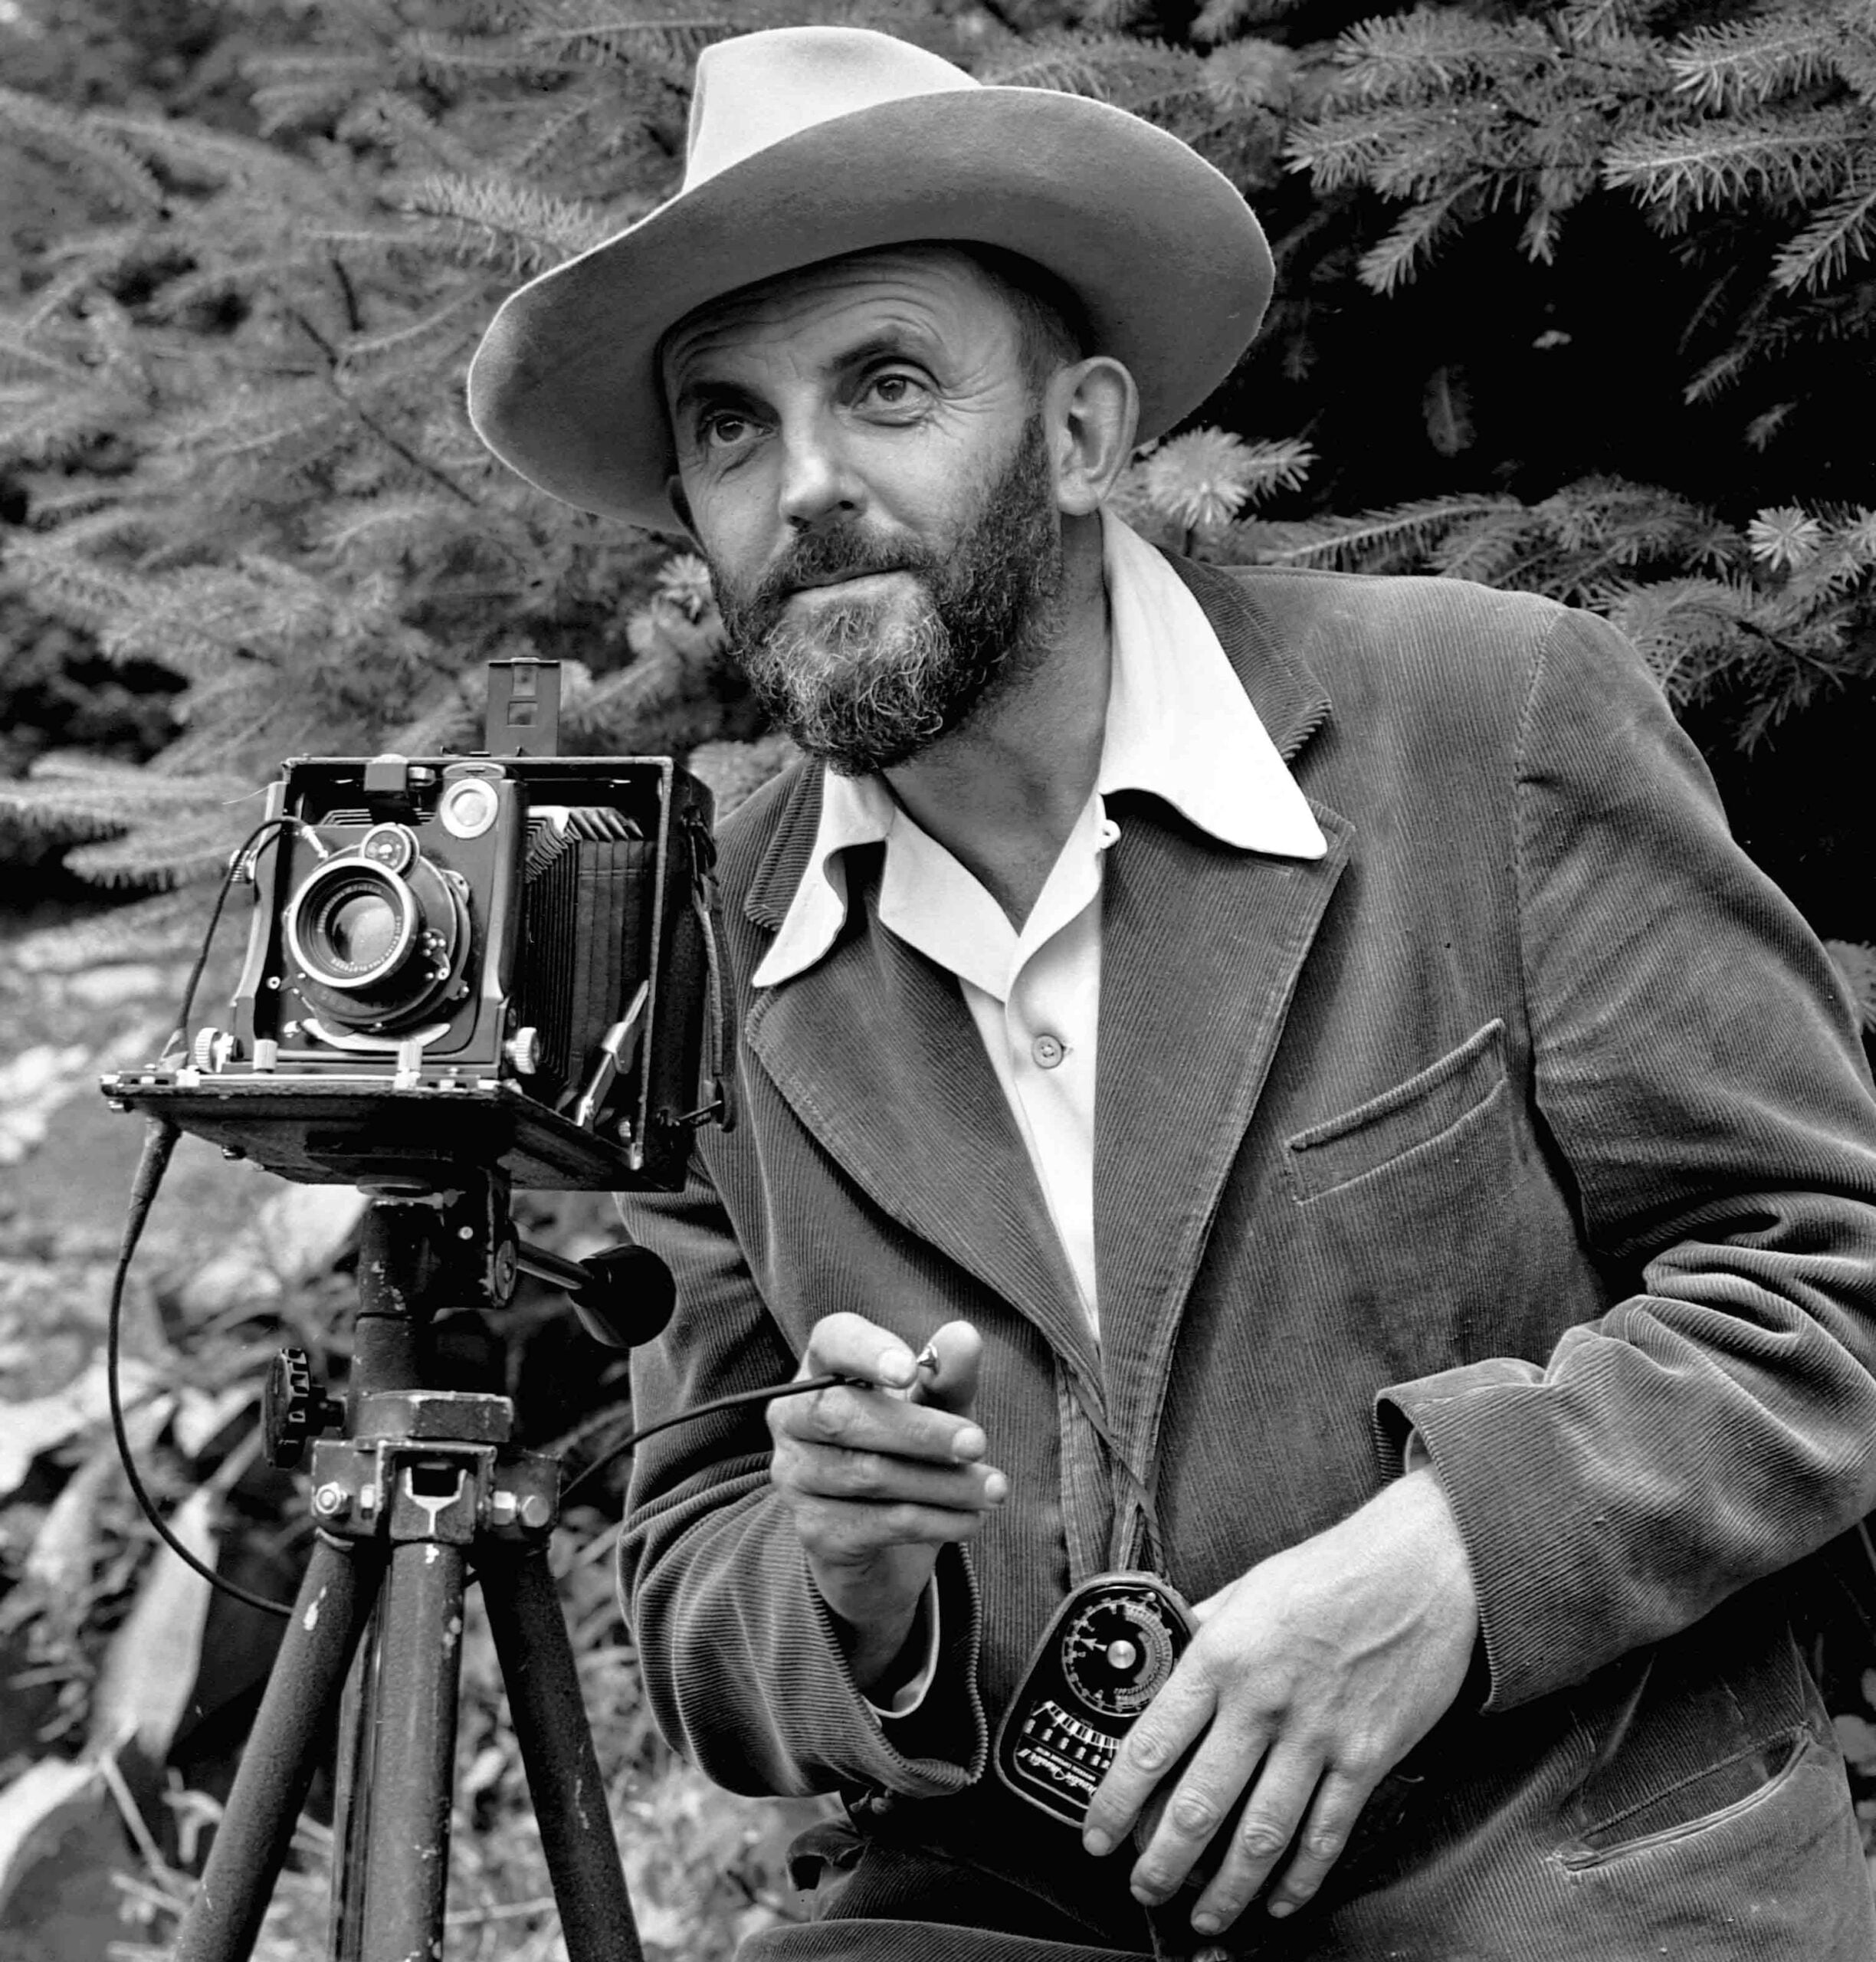 Ansel_Adams picture